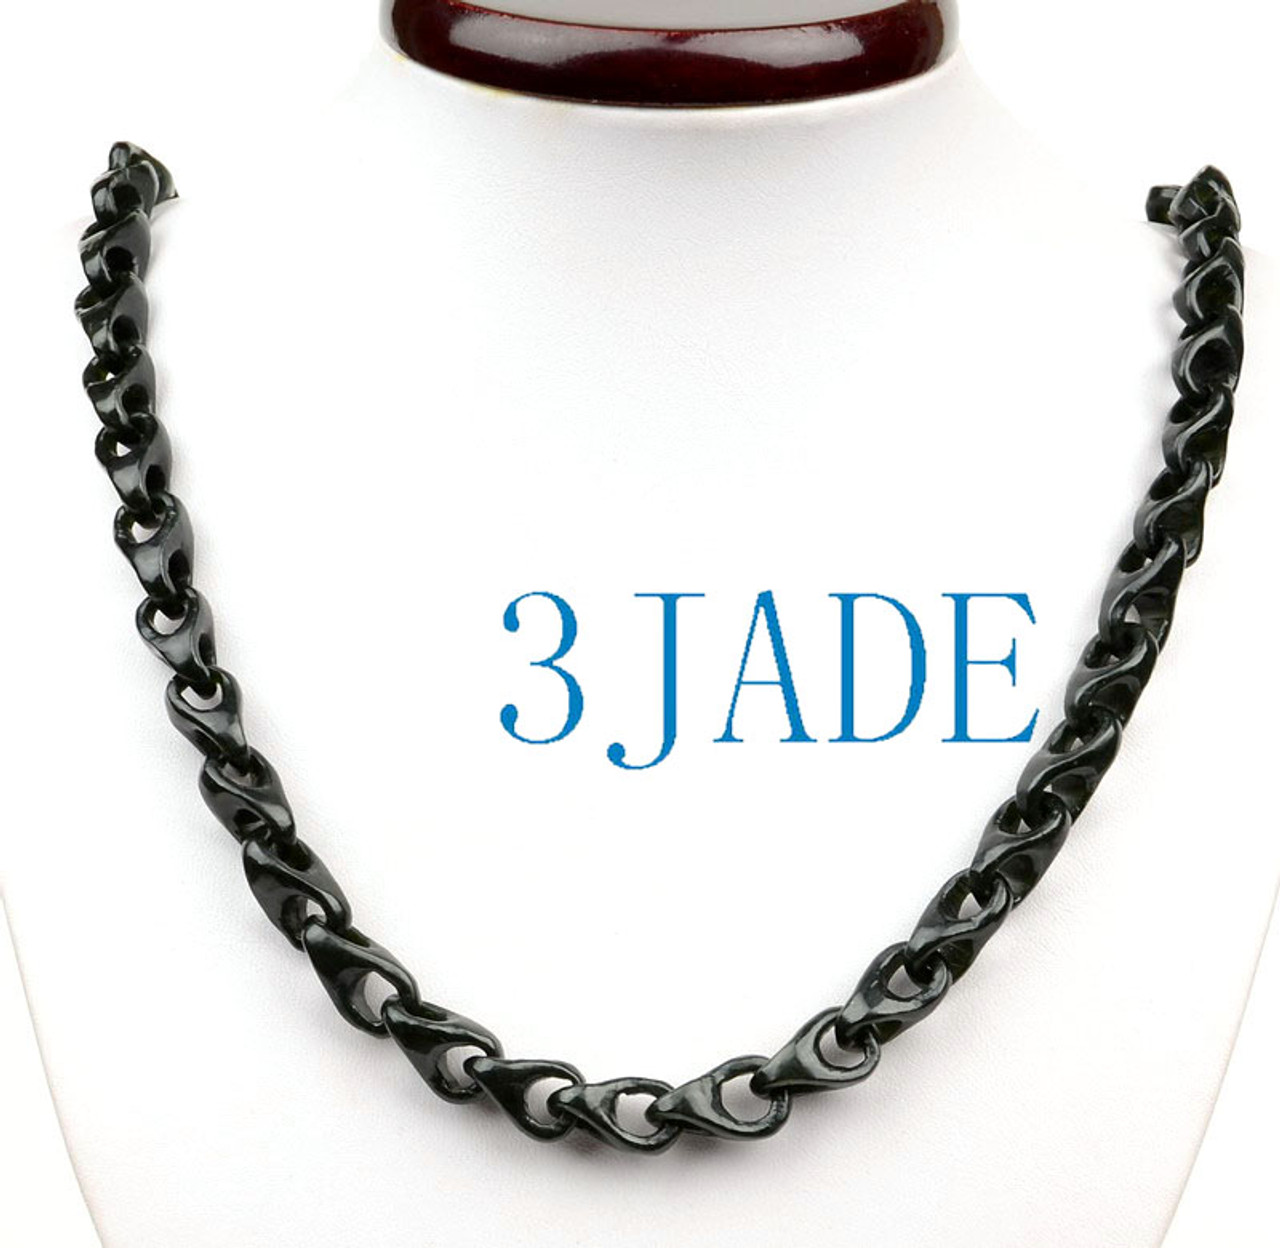 Hand Carved Black Nephrite Jade Link Chain Necklace